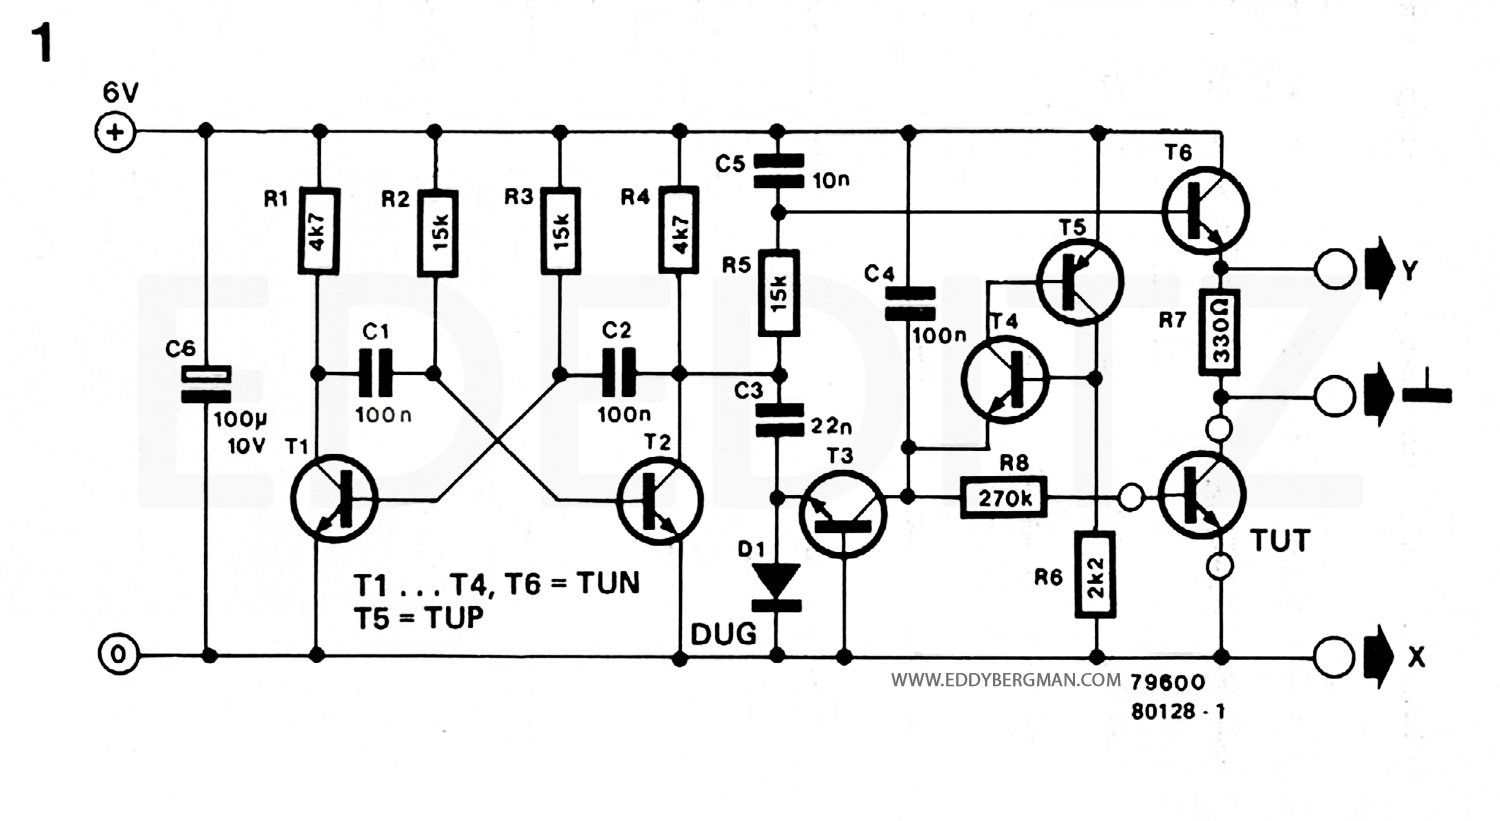 medium resolution of i was impressed by the simplicity and effectiveness of this little circuit and since i didn t see it available on the internet i thought i d share it with